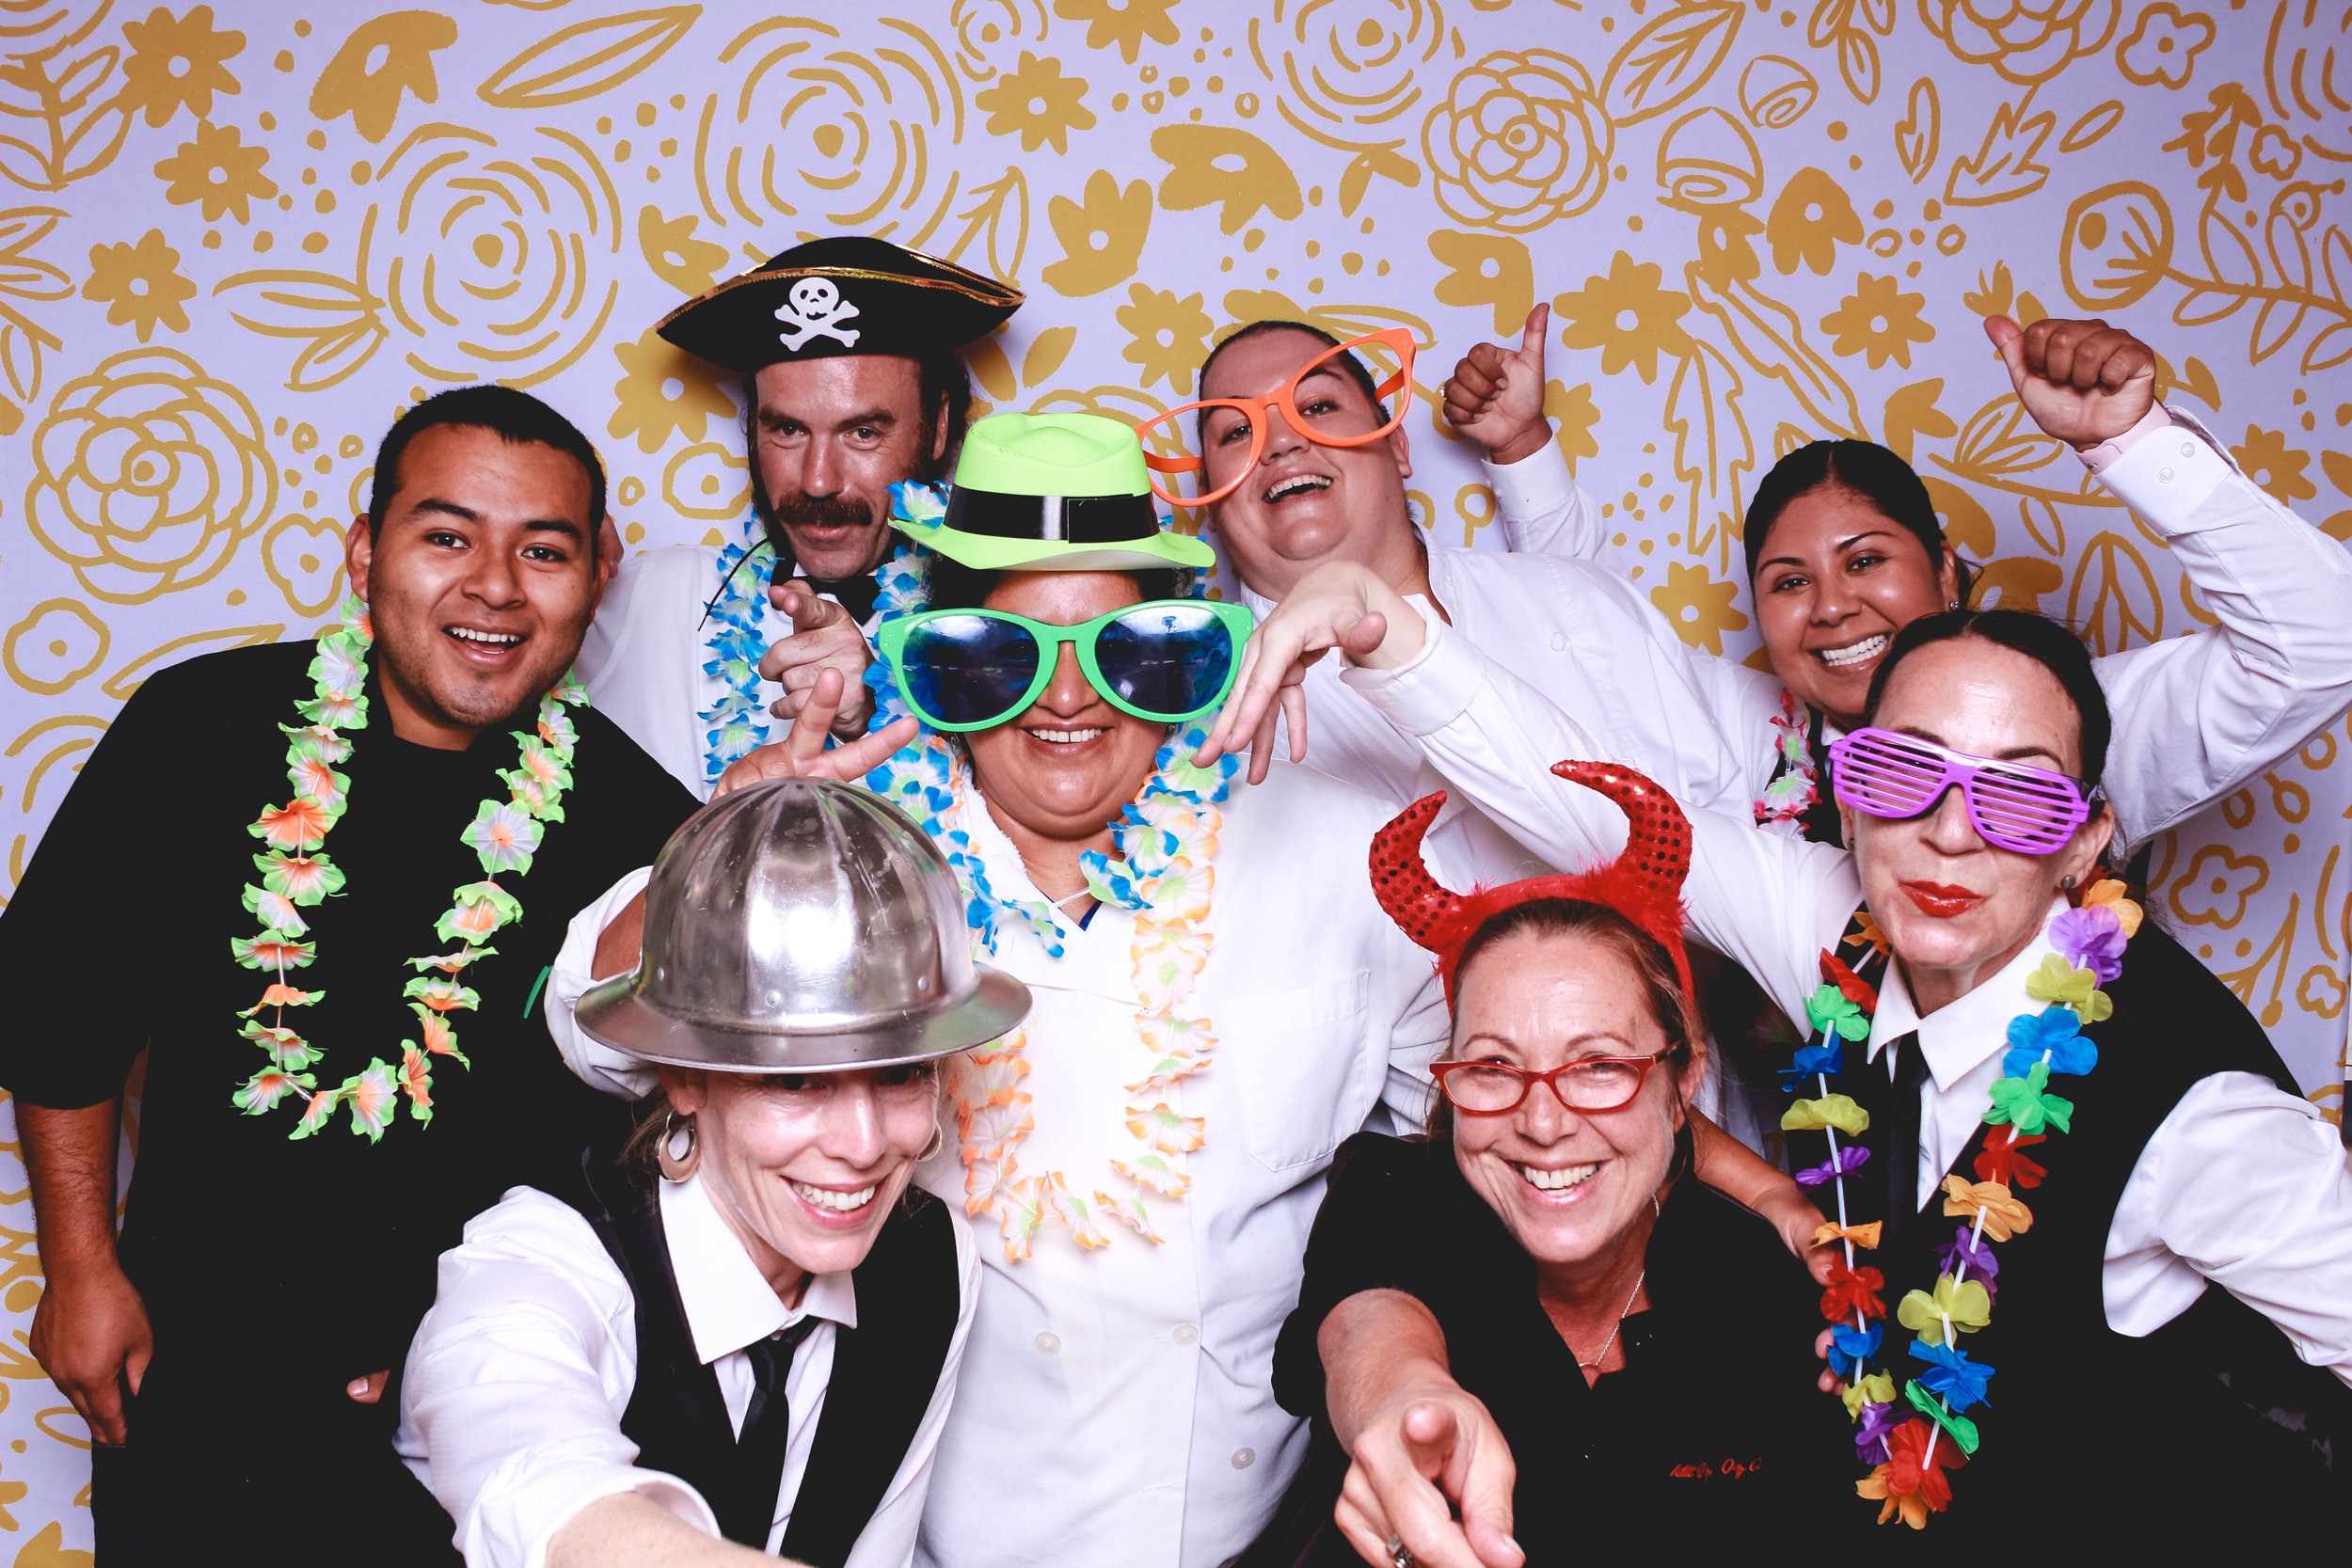 kat_nate-photobooth_oz-catering-1.jpg